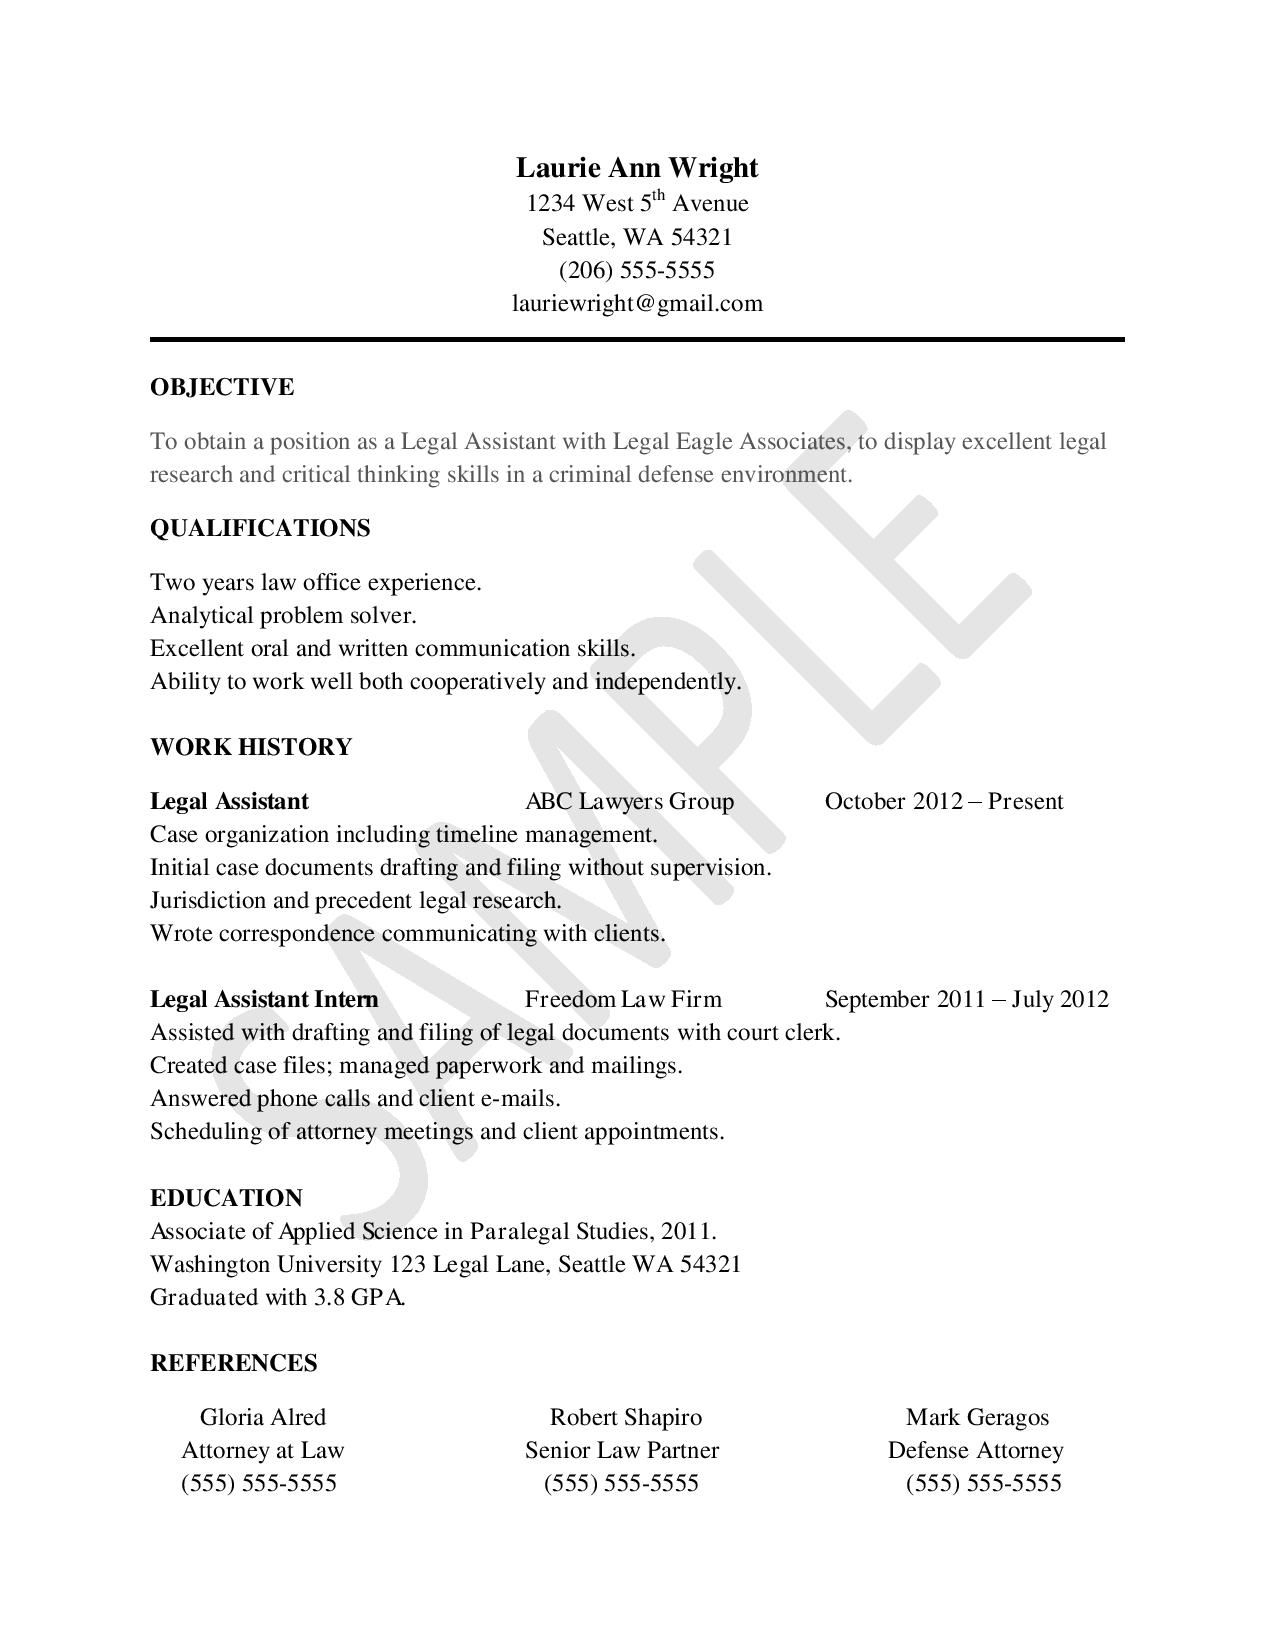 Sample Resume for Legal Assistants | Legal Assistant Tips ...